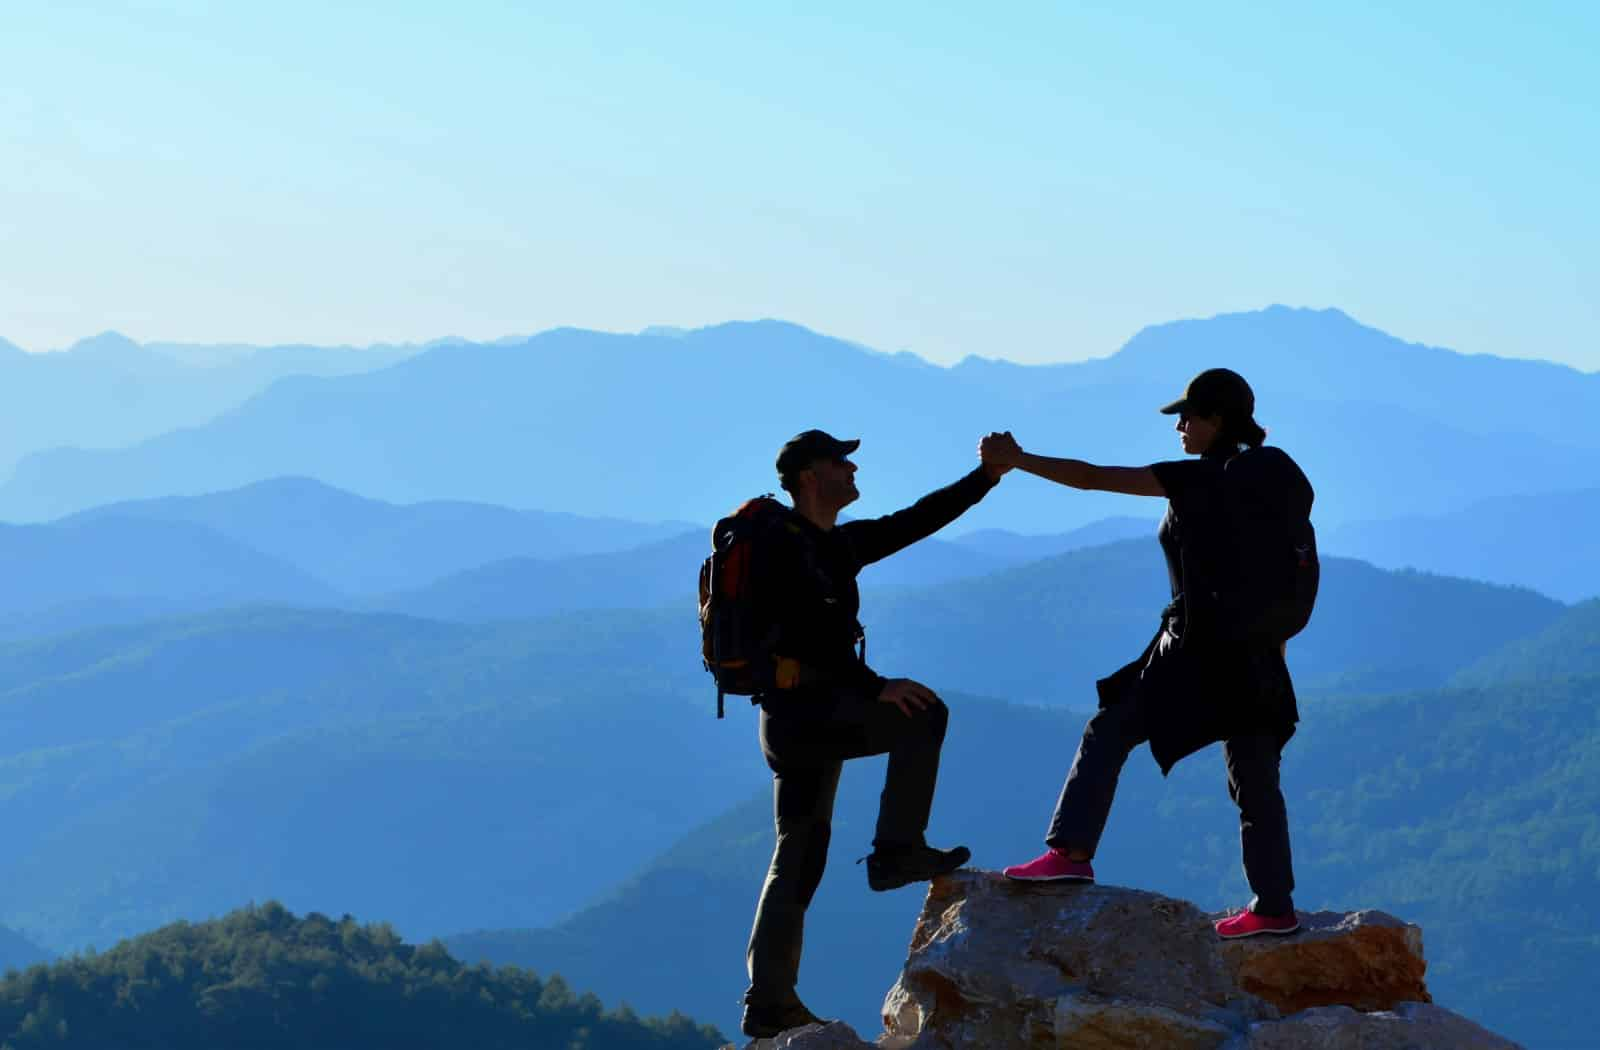 Hikers Holding Hands On High Rock With Mountain Background